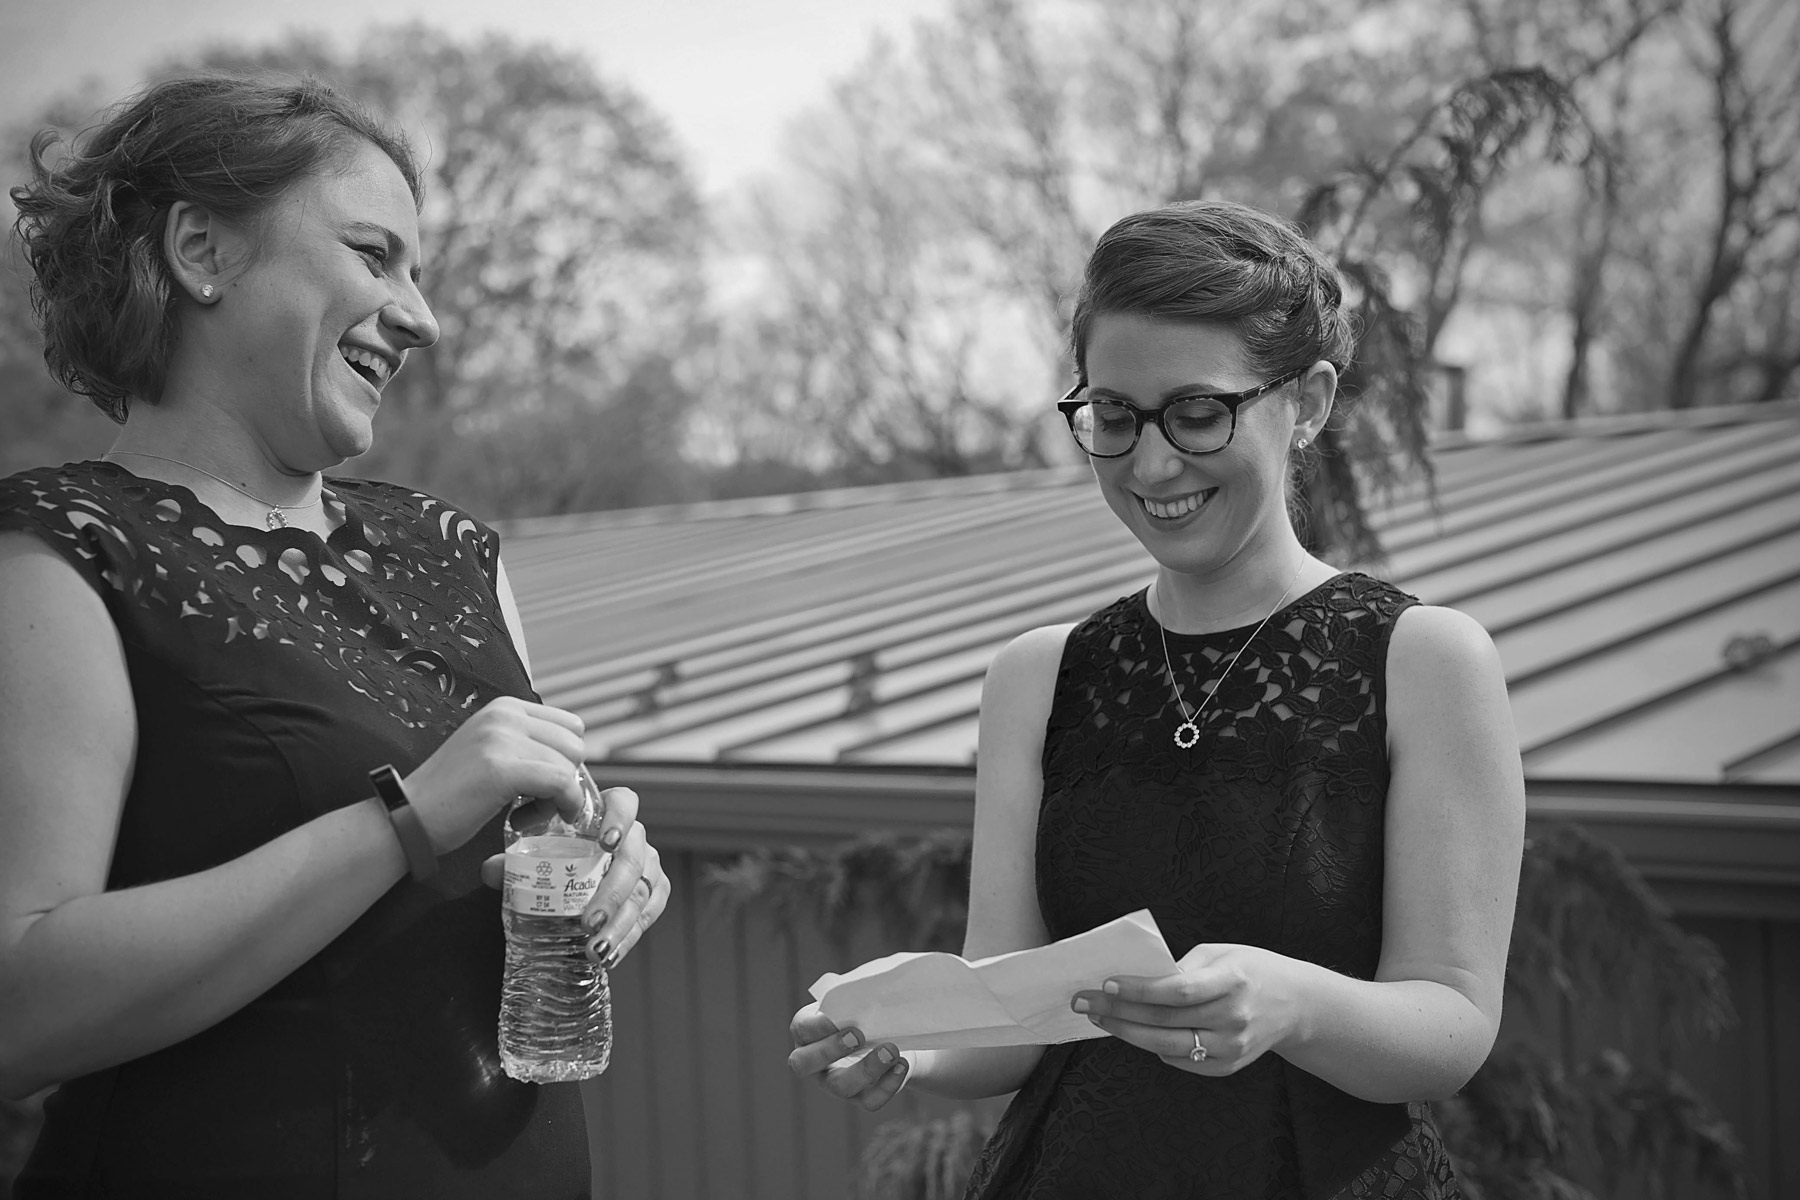 Maid of honor practices her toast with a bridesmaid